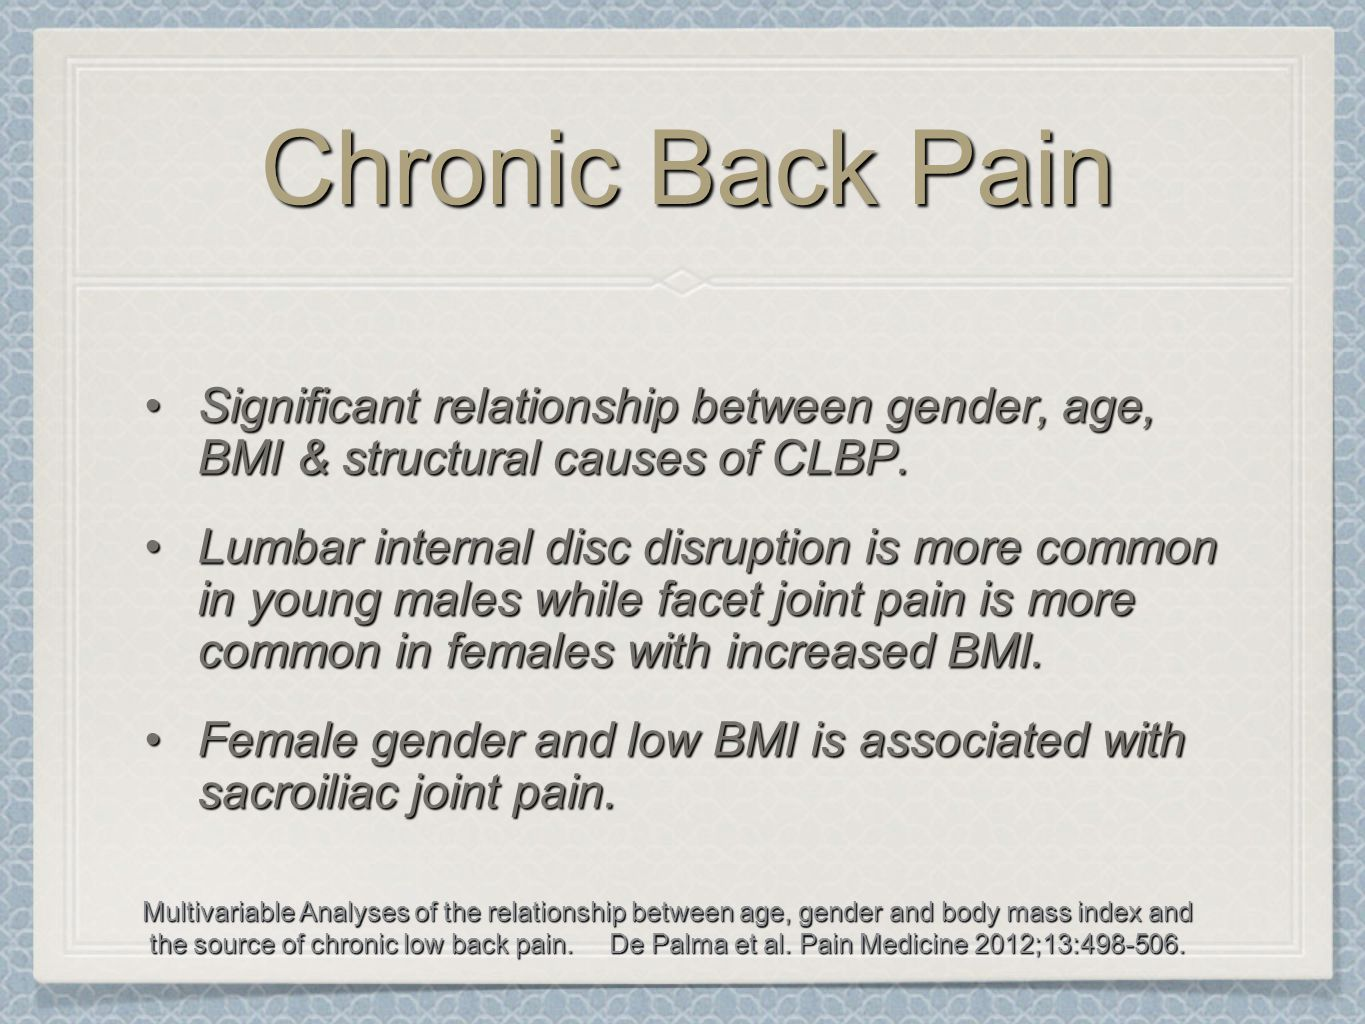 Chronic Back Pain Significant relationship between gender, age, BMI & structural causes of CLBP.